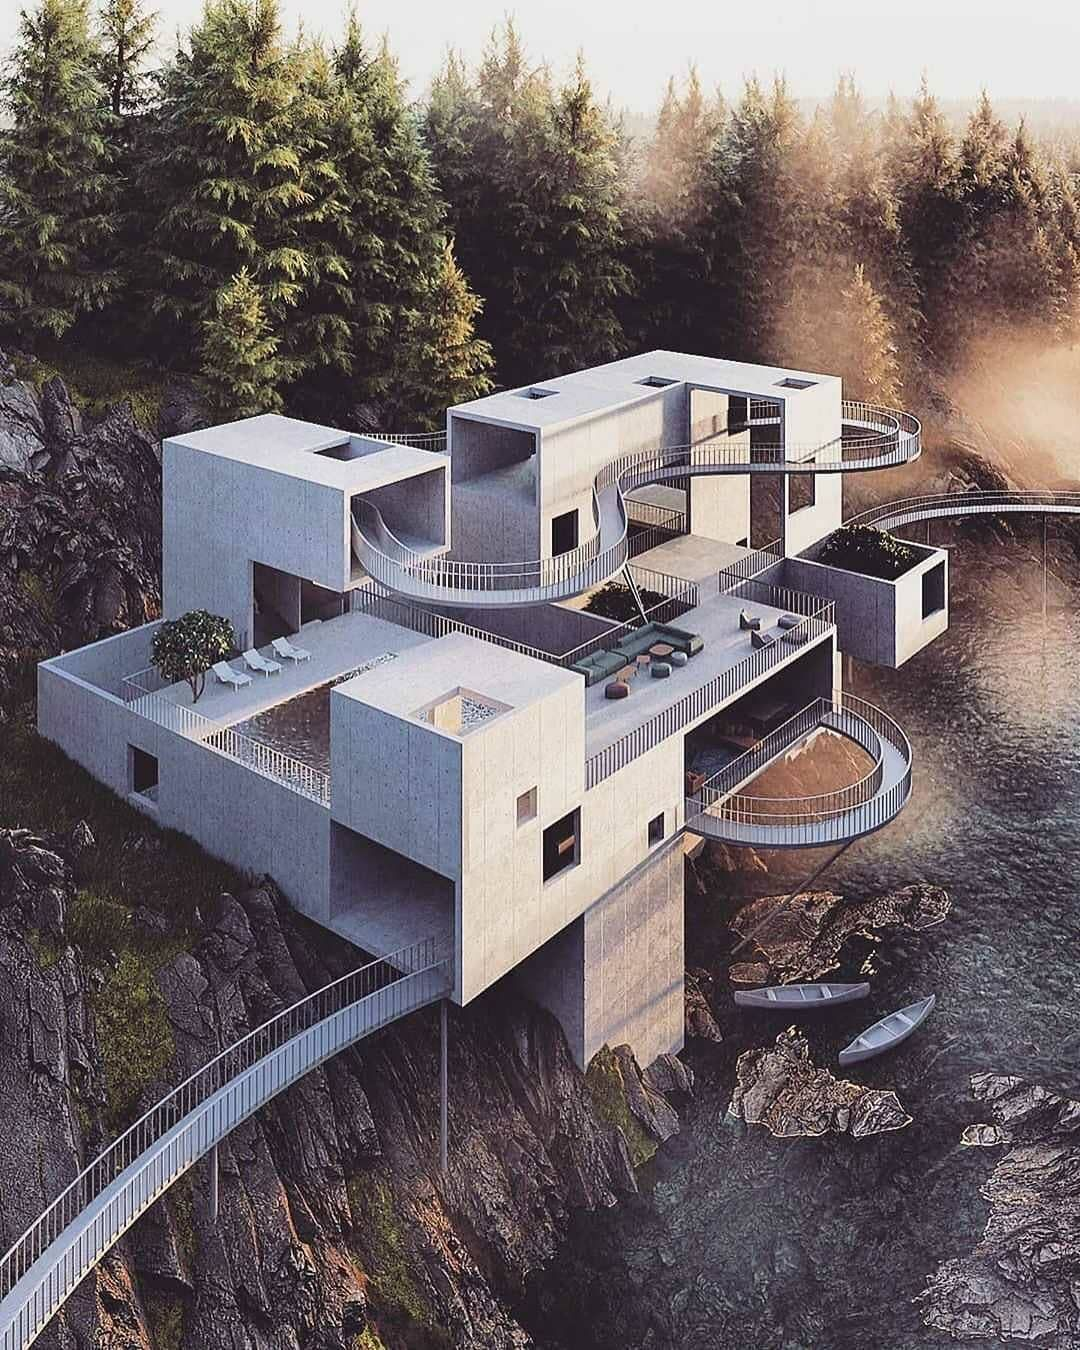 A Forest Goliath Do You Think This Concept Could Work And Why Let Us Know Your Opinion In 2020 Architecture Amazing Architecture Concept Architecture